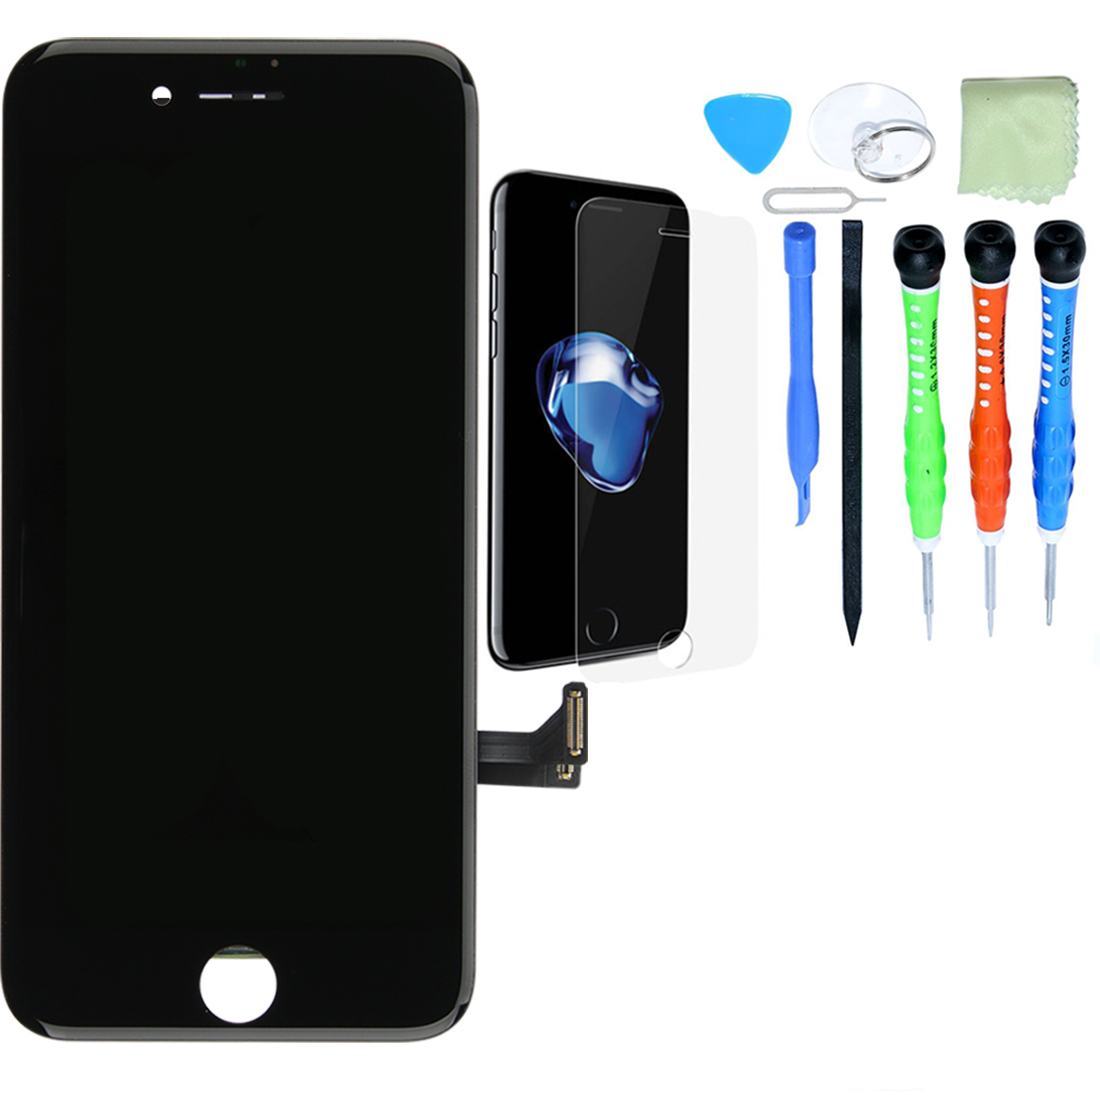 iPhone LCD Screen and Digitizer Repair Kits - iPhone 7 Plus - Black